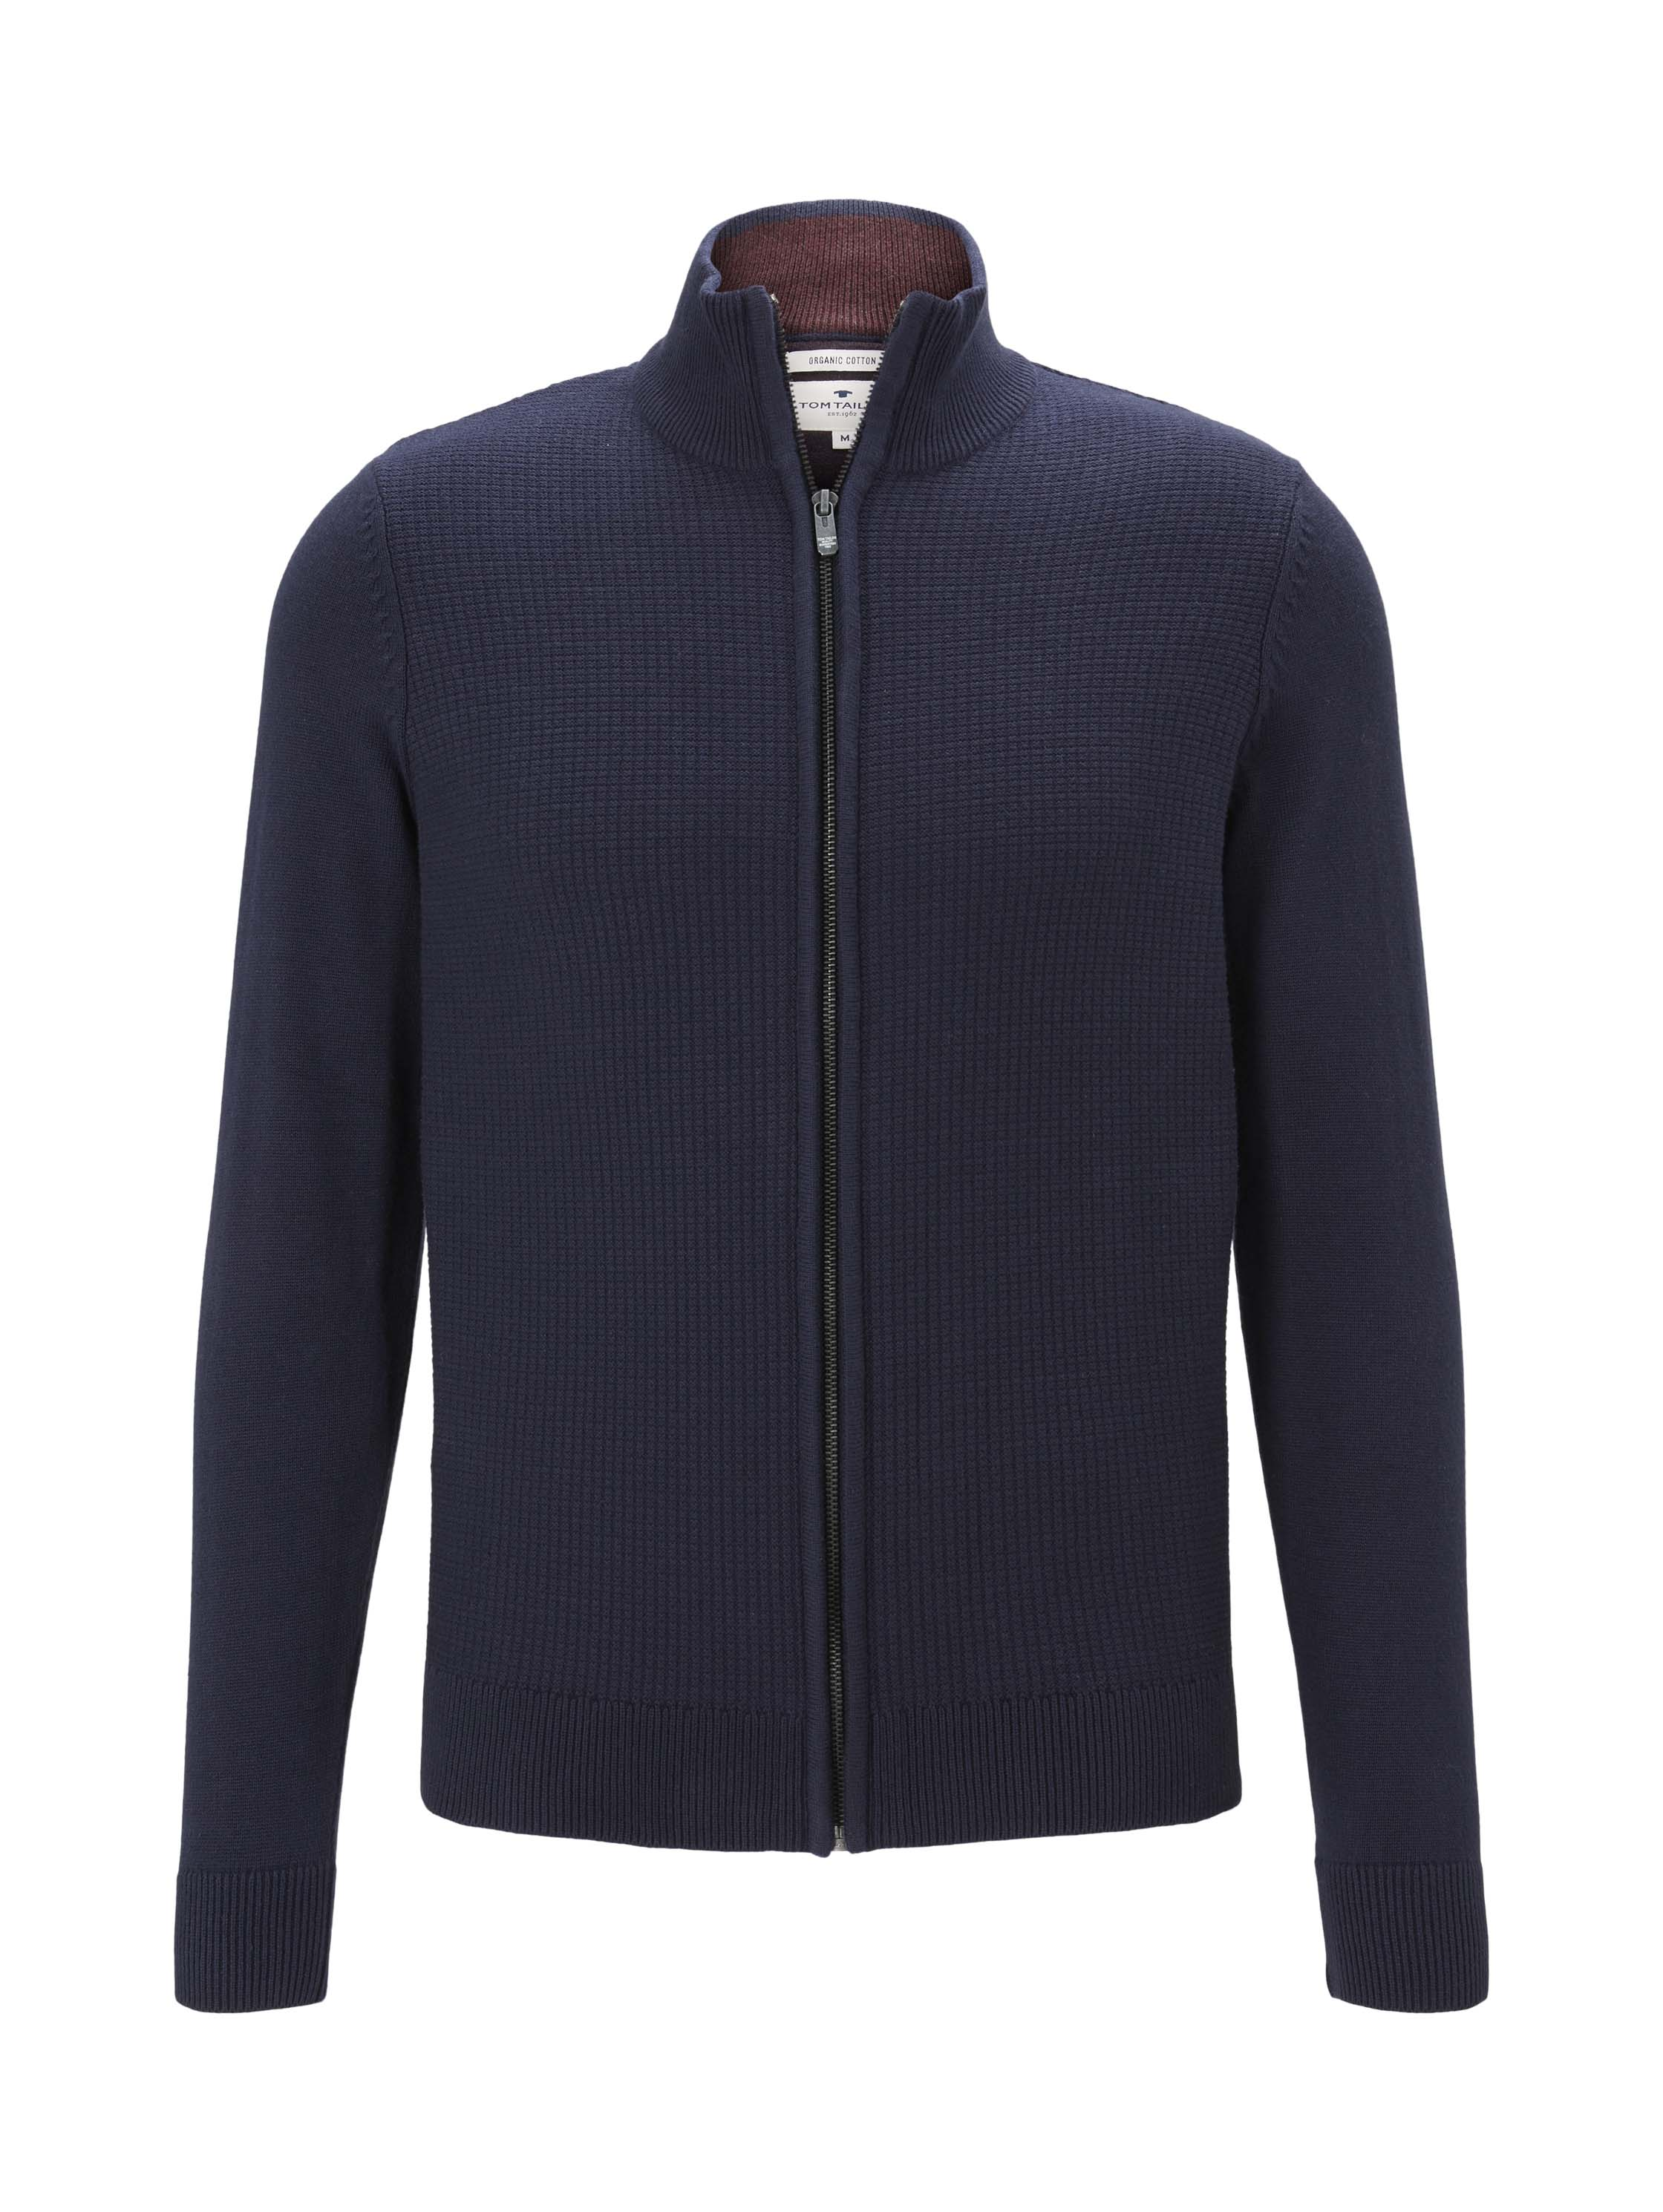 basic structured jacket, Knitted Navy